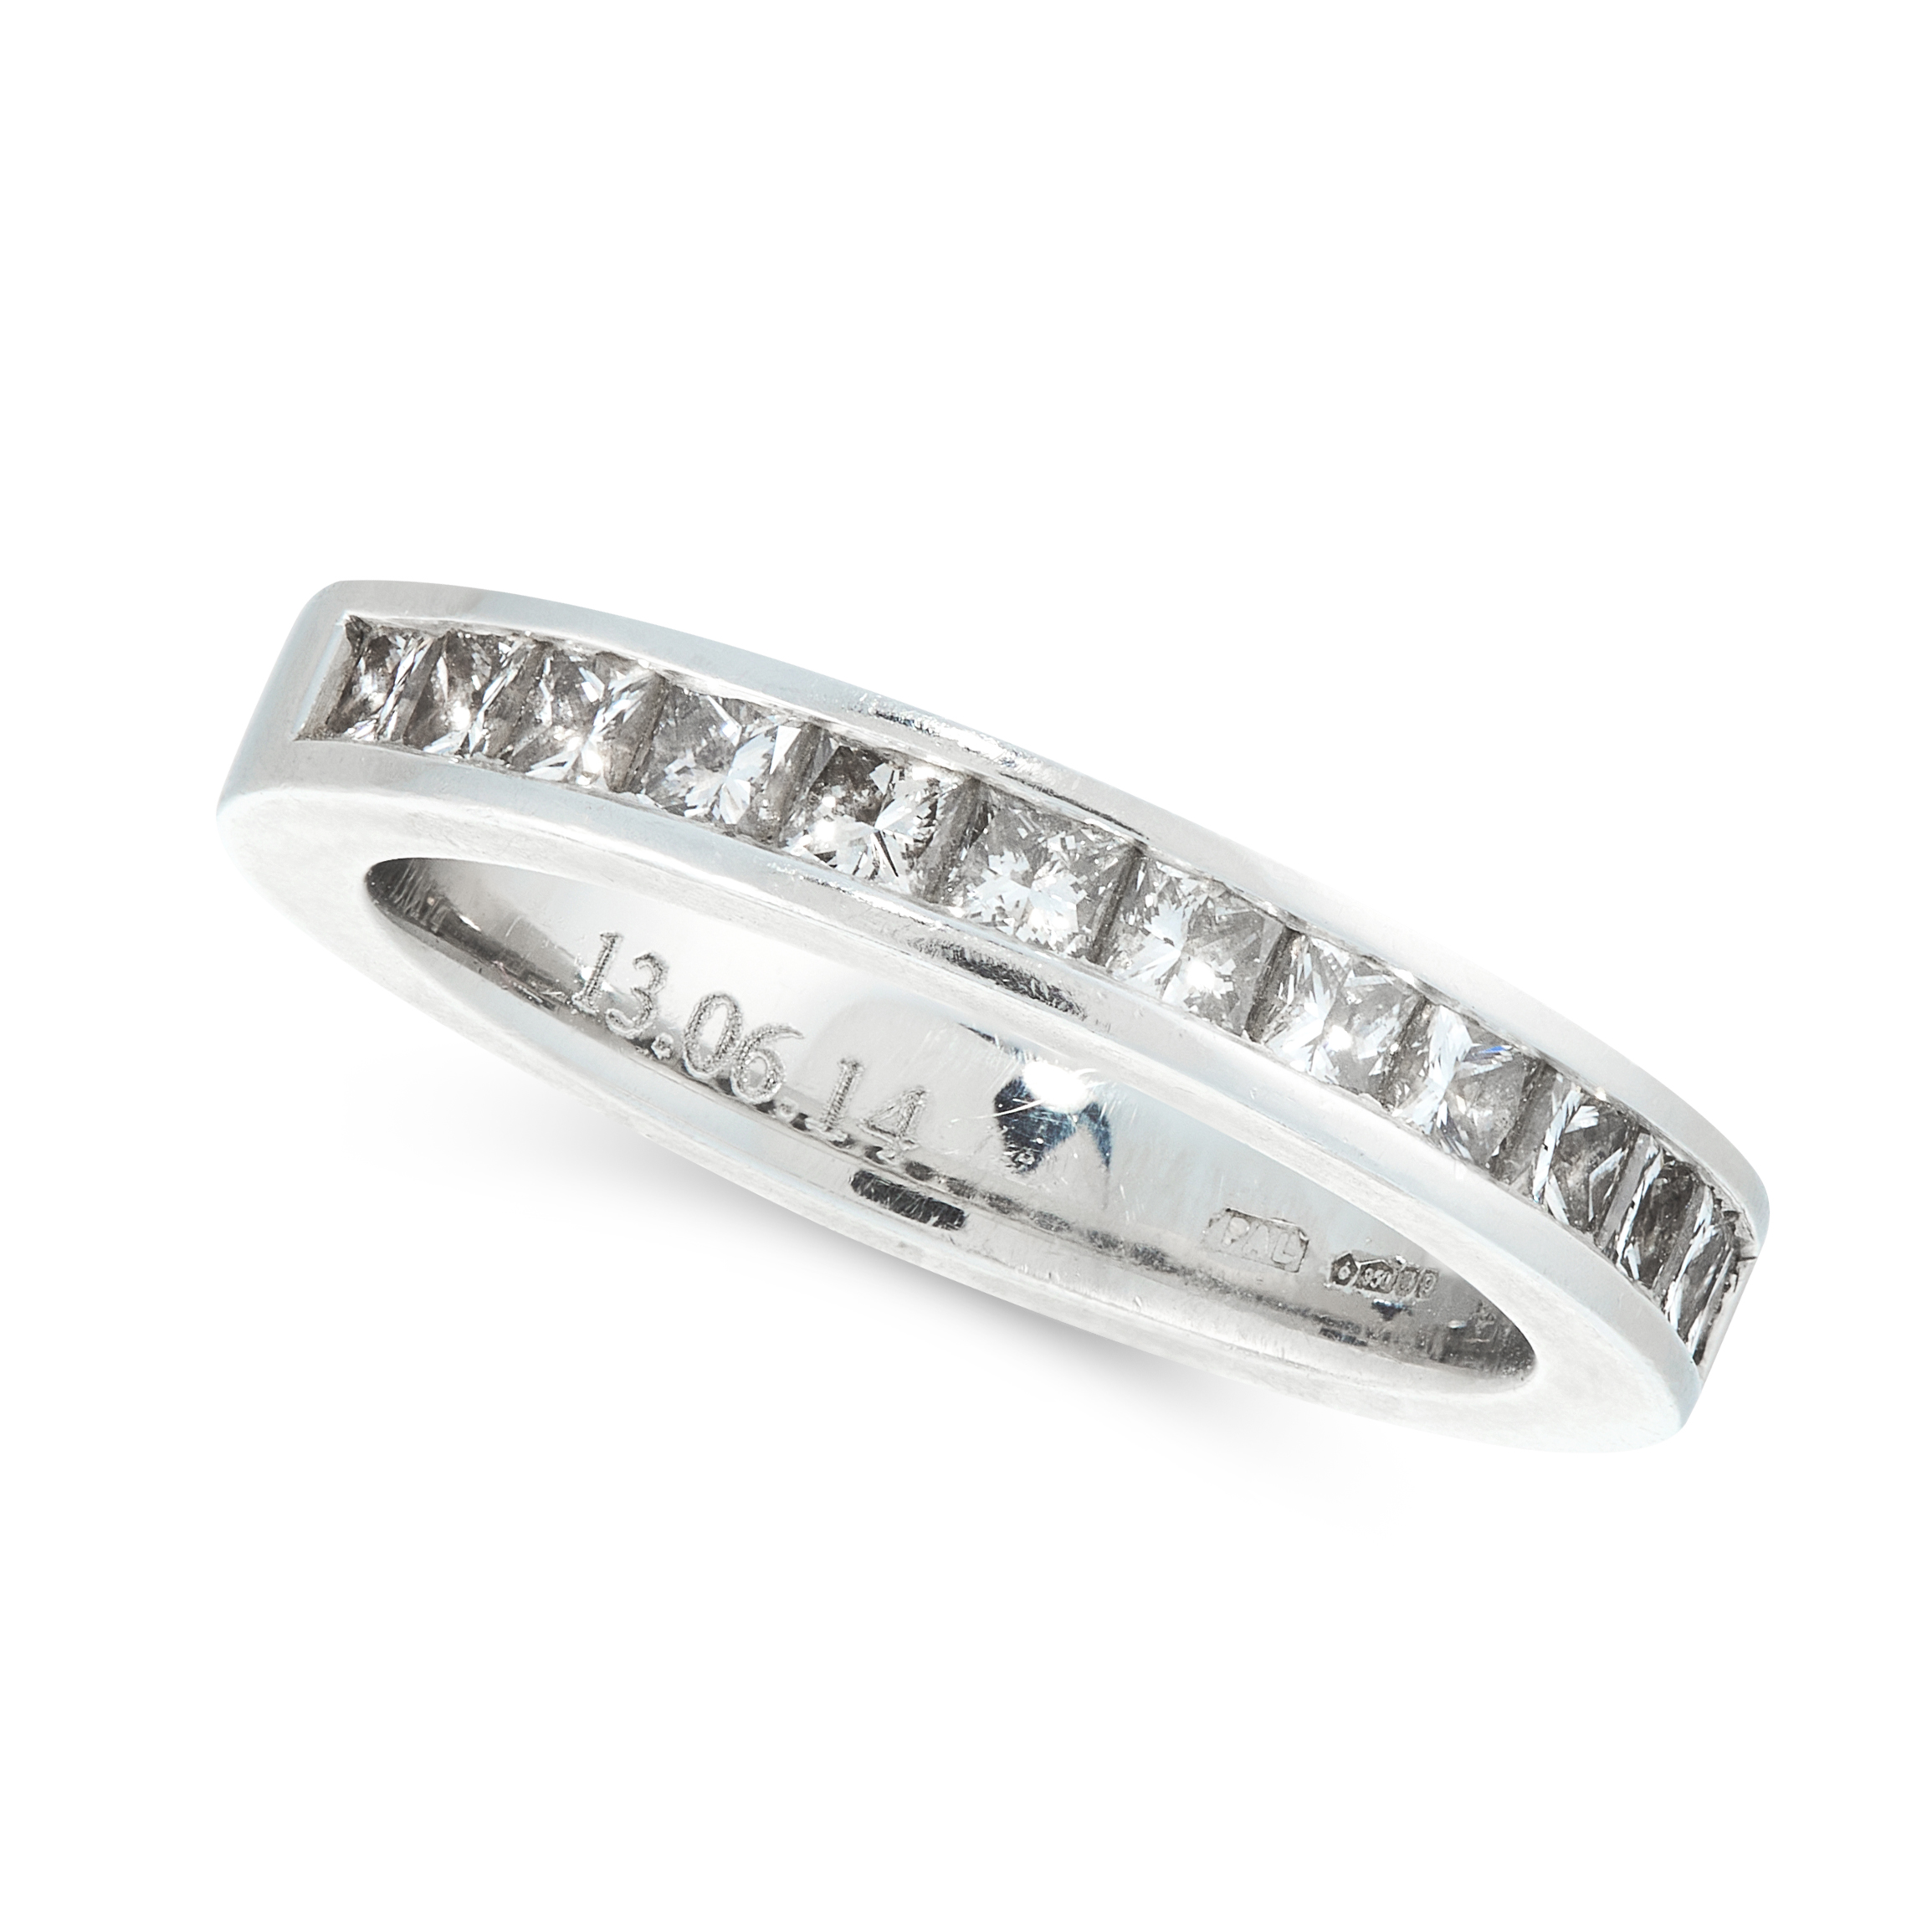 DIAMOND ETERNITY RING in platinum, the band designed as a half eternity, channel set with princess